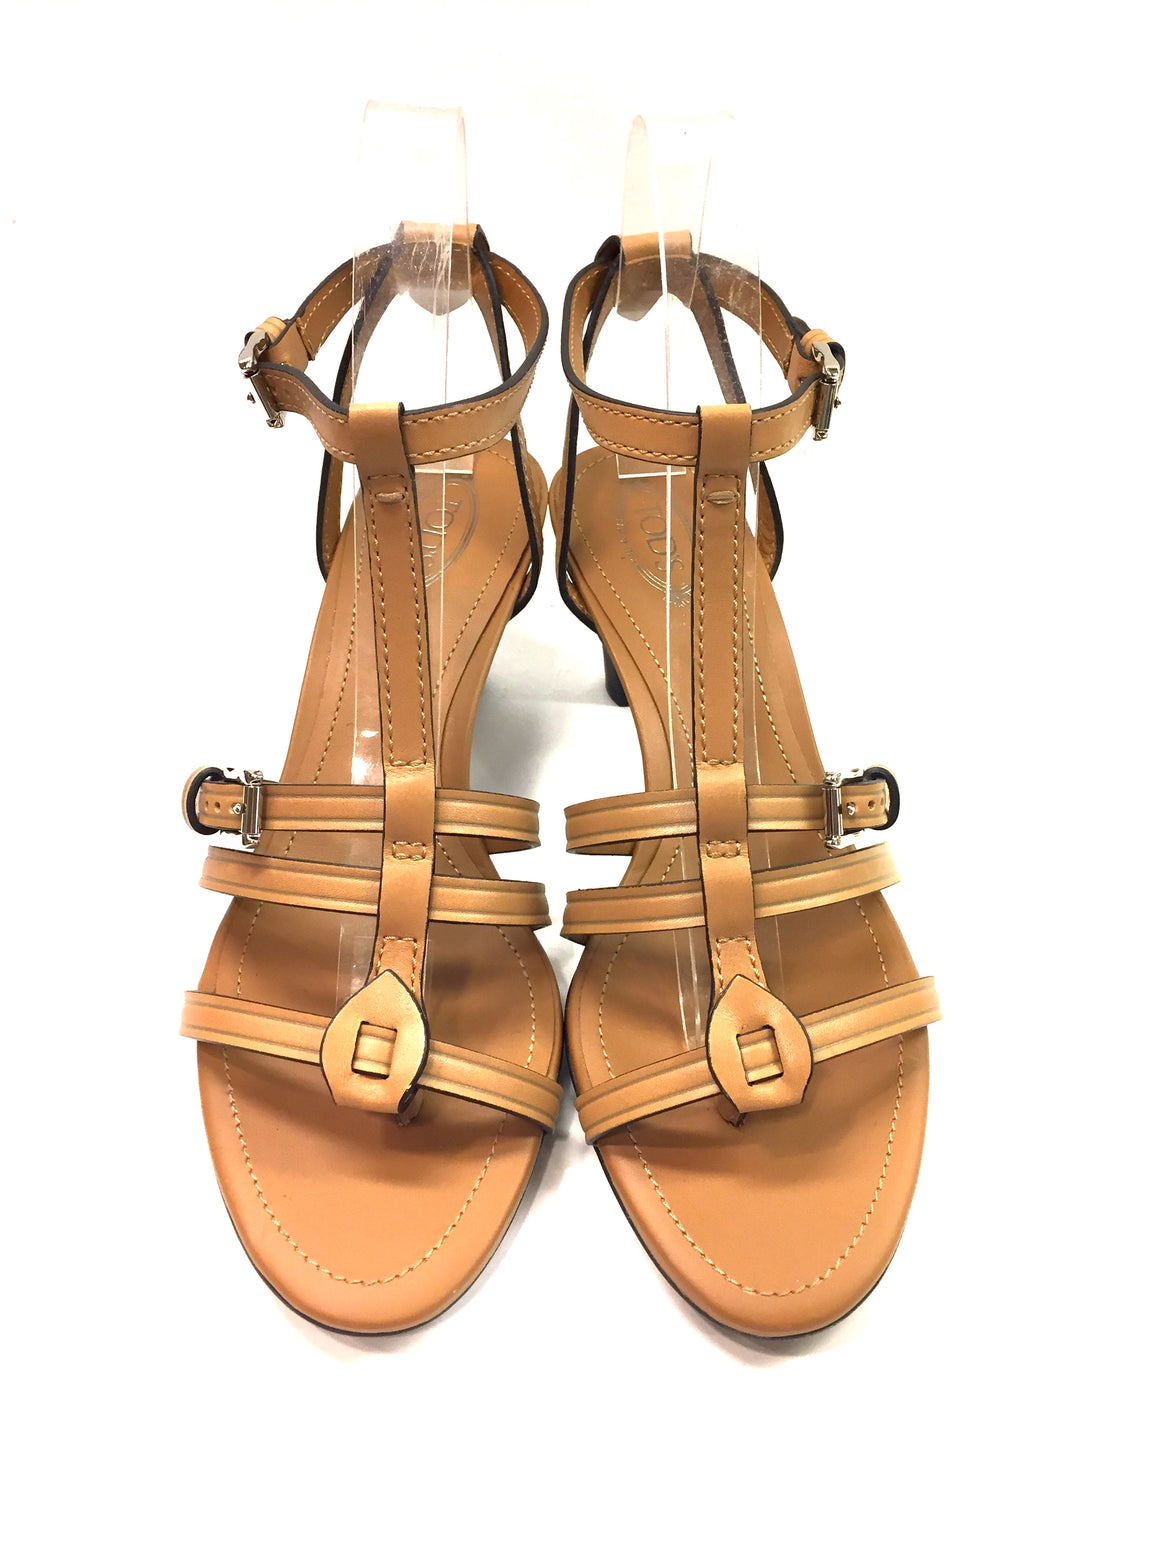 New TOD'S Tan Leather Ankle-Strap Slingback Heel Thong Sandals Shoes Sz37